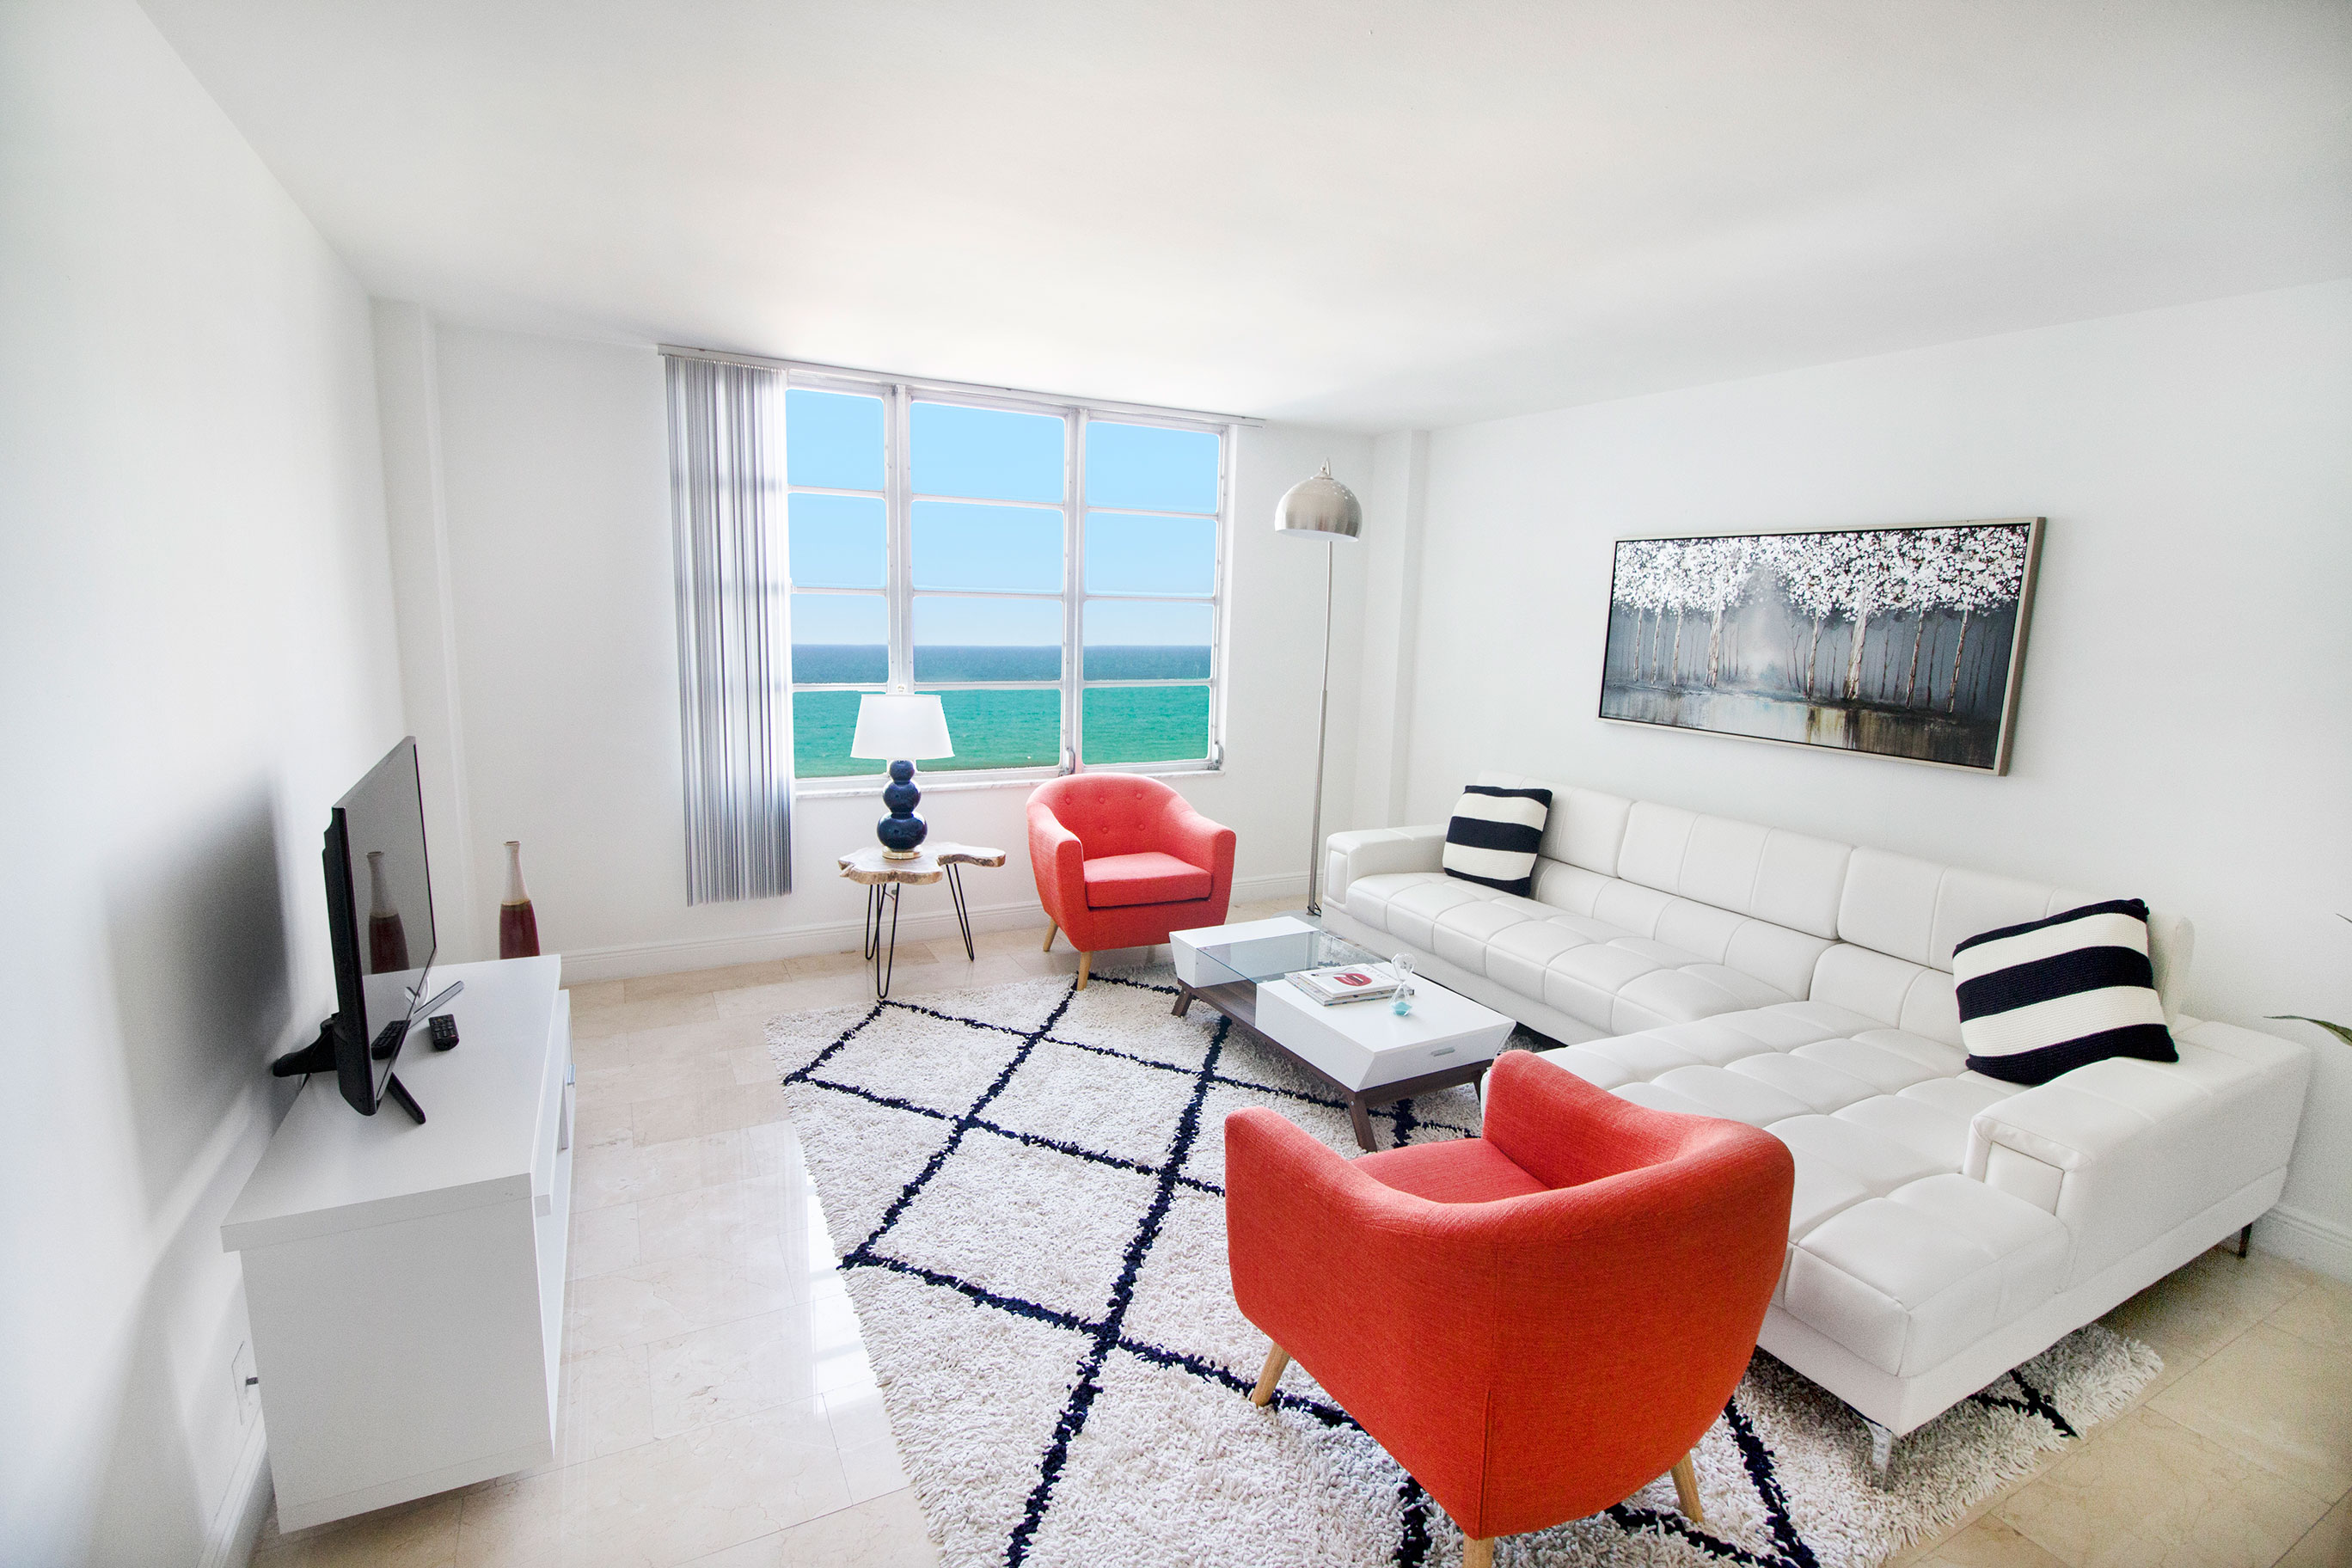 Living room of a Deluxe 1 Bedroom Apartment at Seacoast Suites